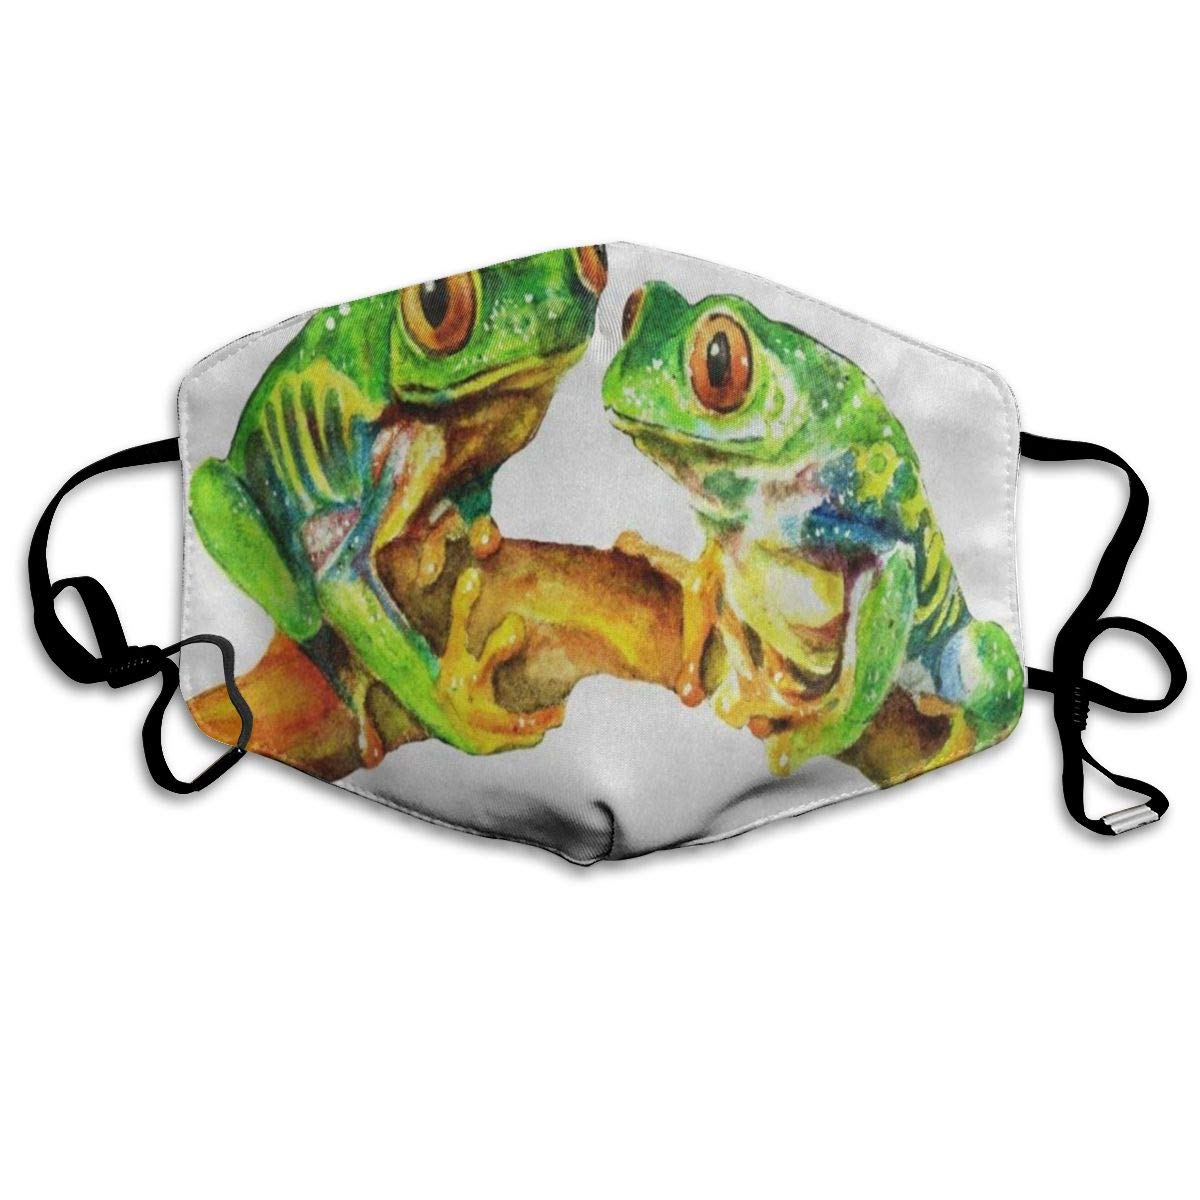 ZHOUSUN Dustproof Tropical Watercolor Frog Mouth Cover Mask Protective   Warm Windproof Mask